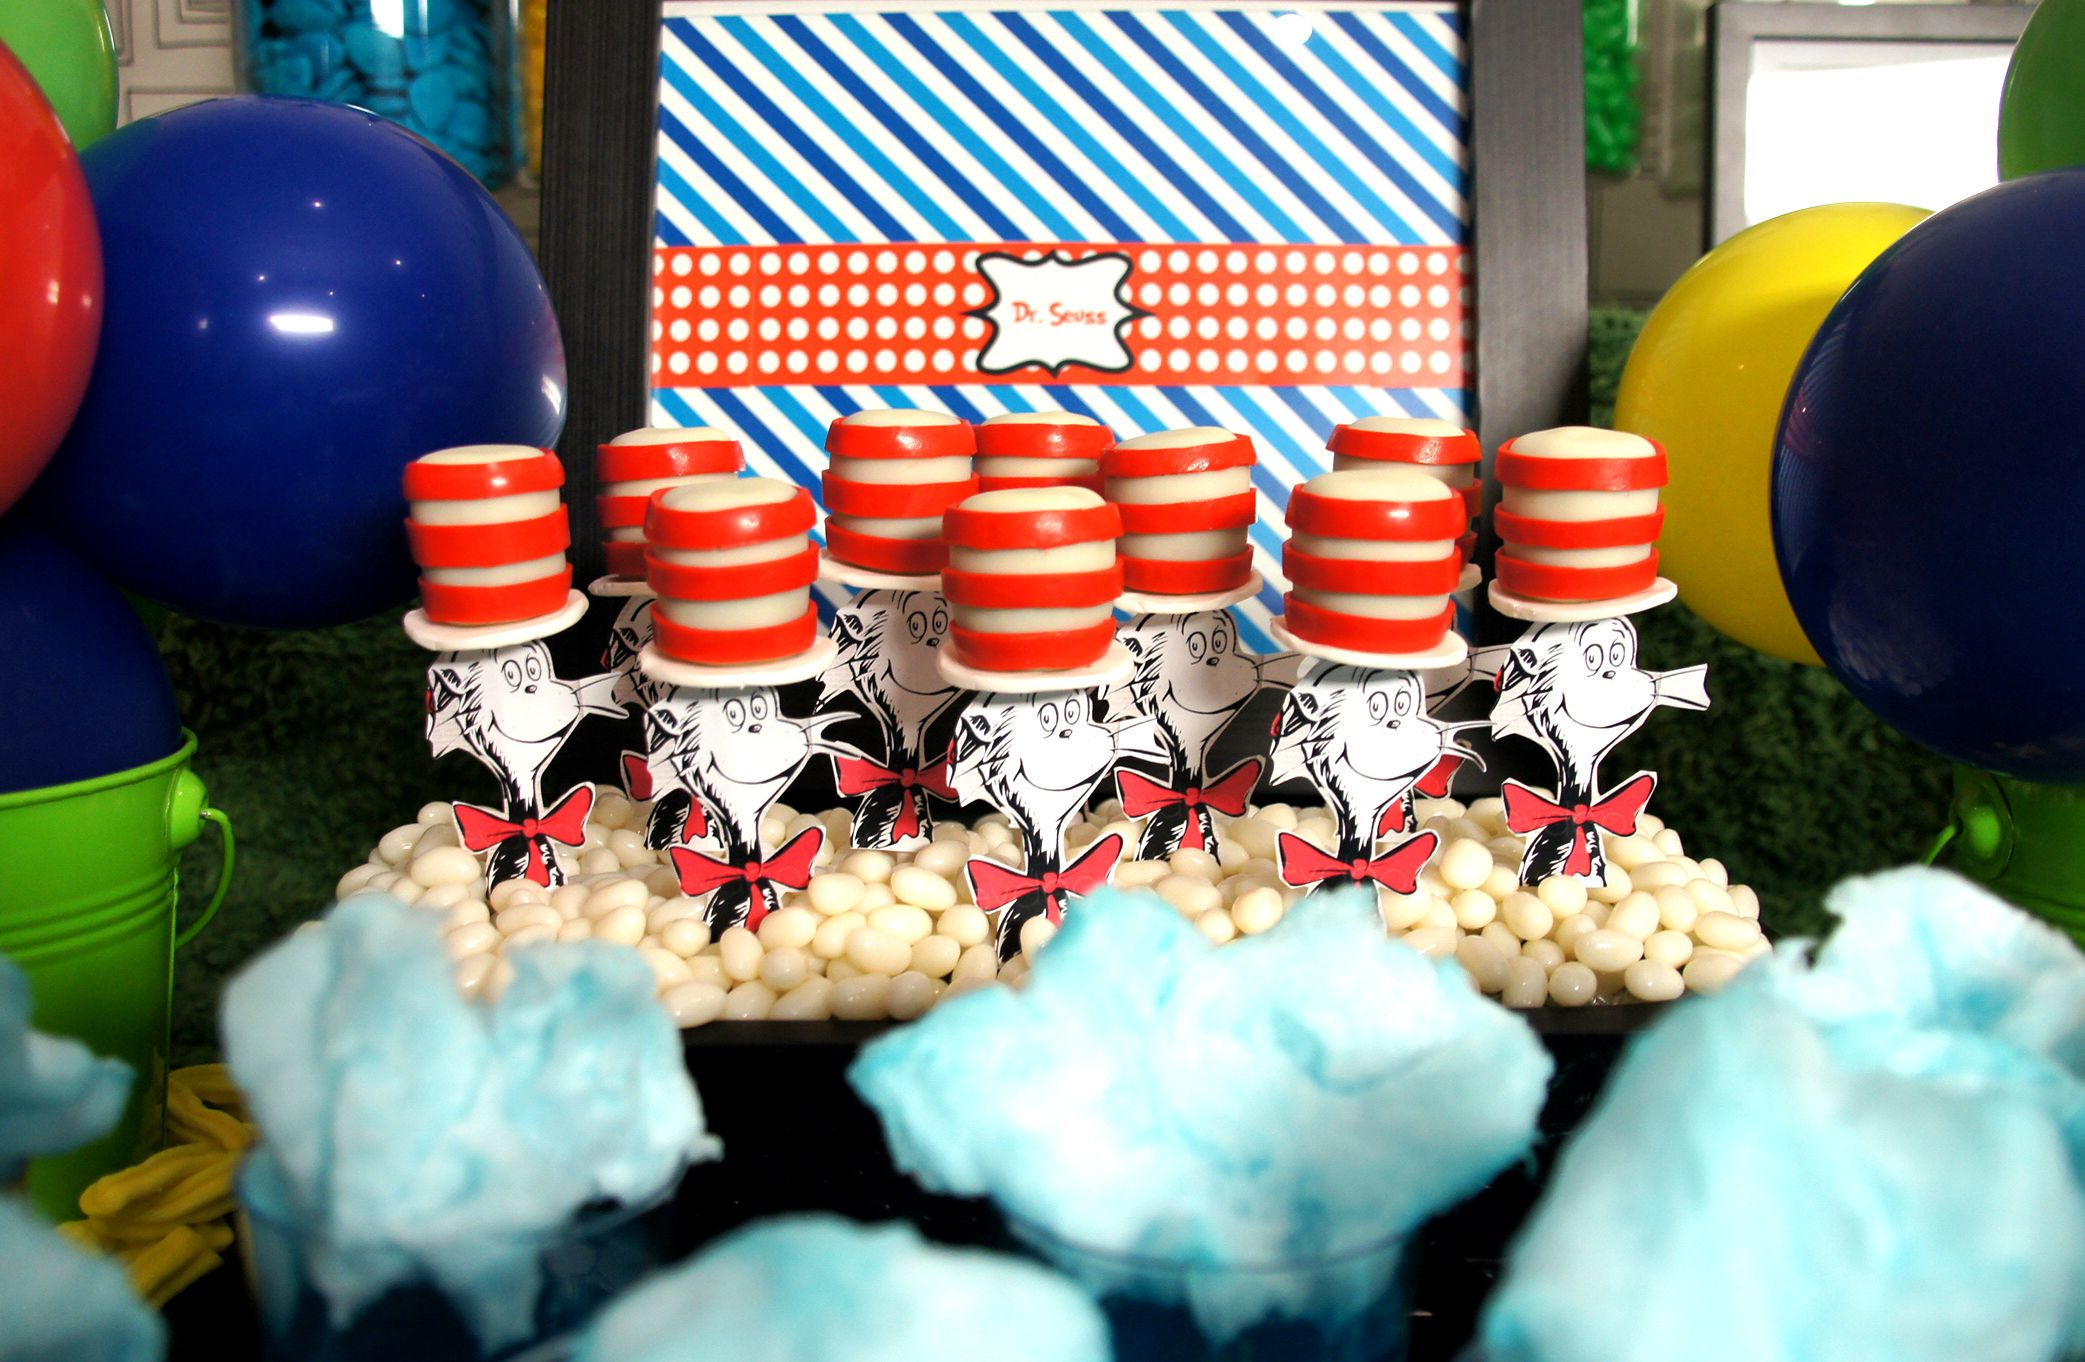 Dr Seuss table design & set up by The Simple Party  Cake pops by sugarpopbakery Printables from Printabelle